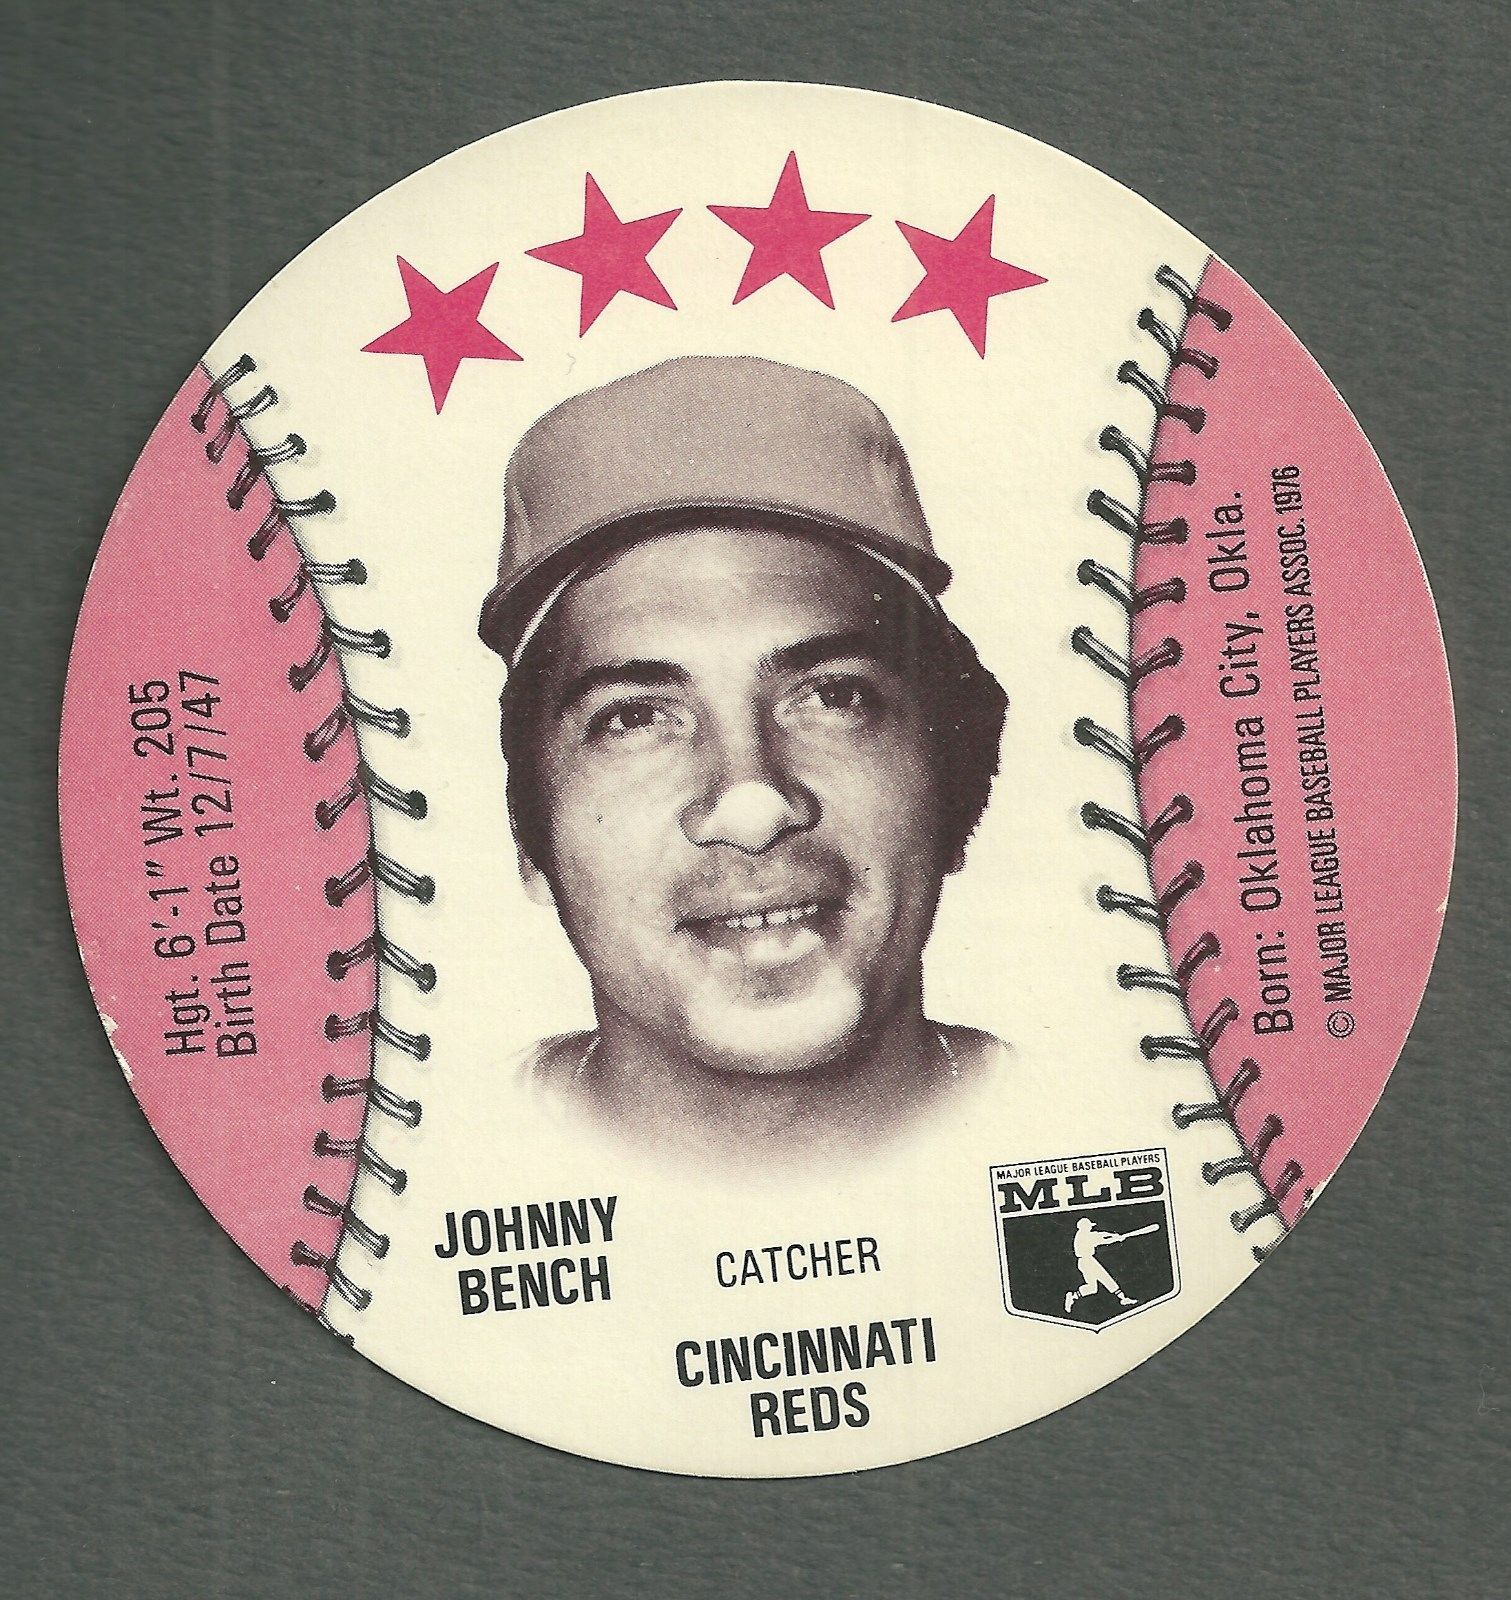 JOHNNY BENCH 1976 ISALY'S ( VINTAGE ROUNDS DISC ) BASEBALL CARD CINCINNATI REDS